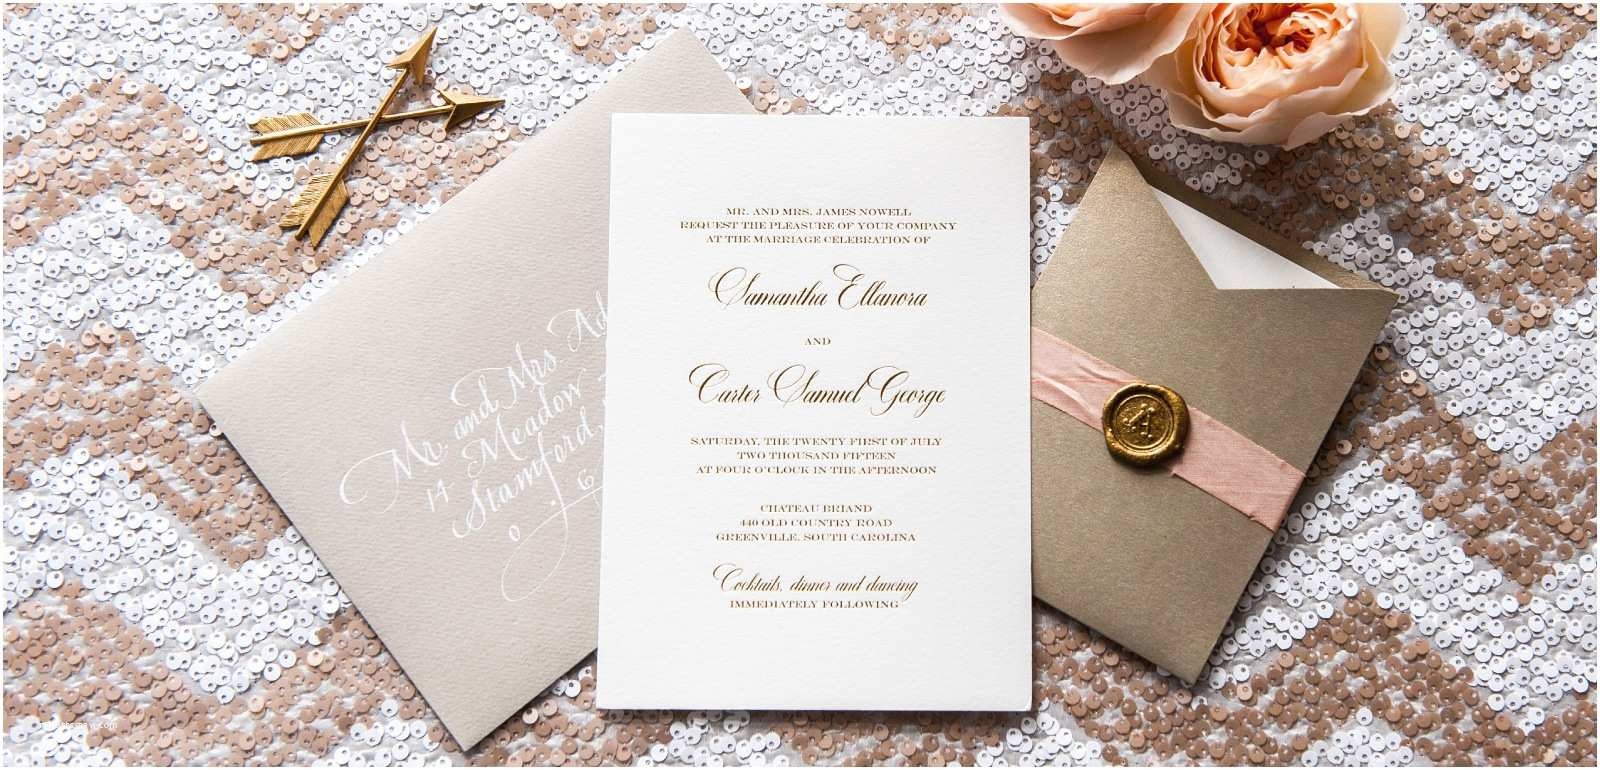 How to Make Own Wedding Invitations Make Your Own Wedding Invitations Uk